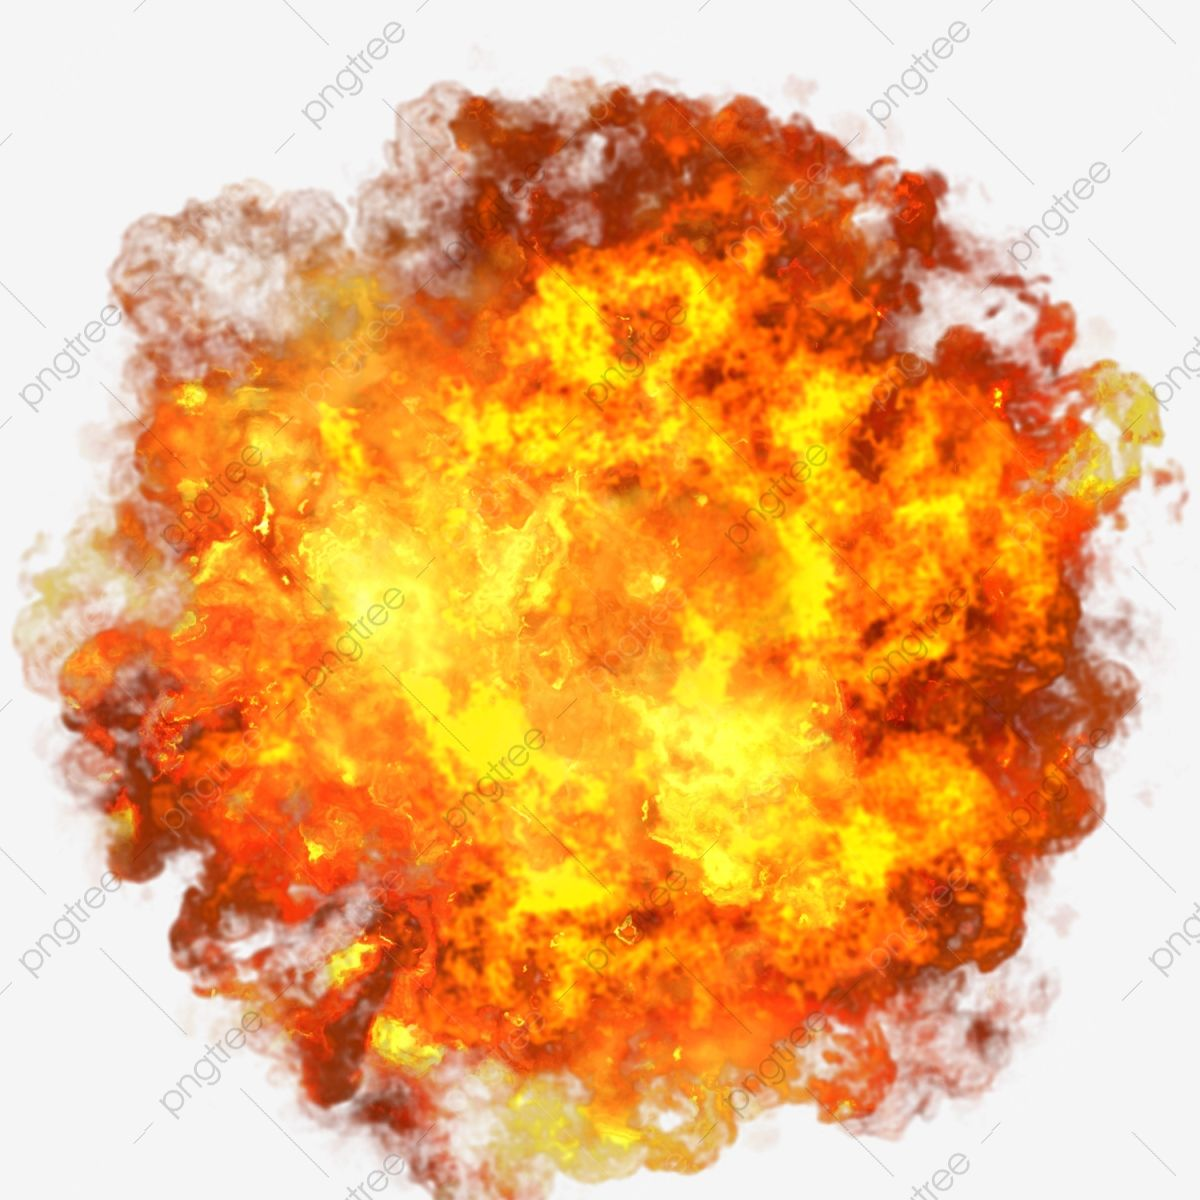 Download This Fire Explosion Blast Flame Png Transparent Fire Fire Png Fire Clipart Png Clipart Image W Fire Image Cartoon Smoke Desktop Background Pictures